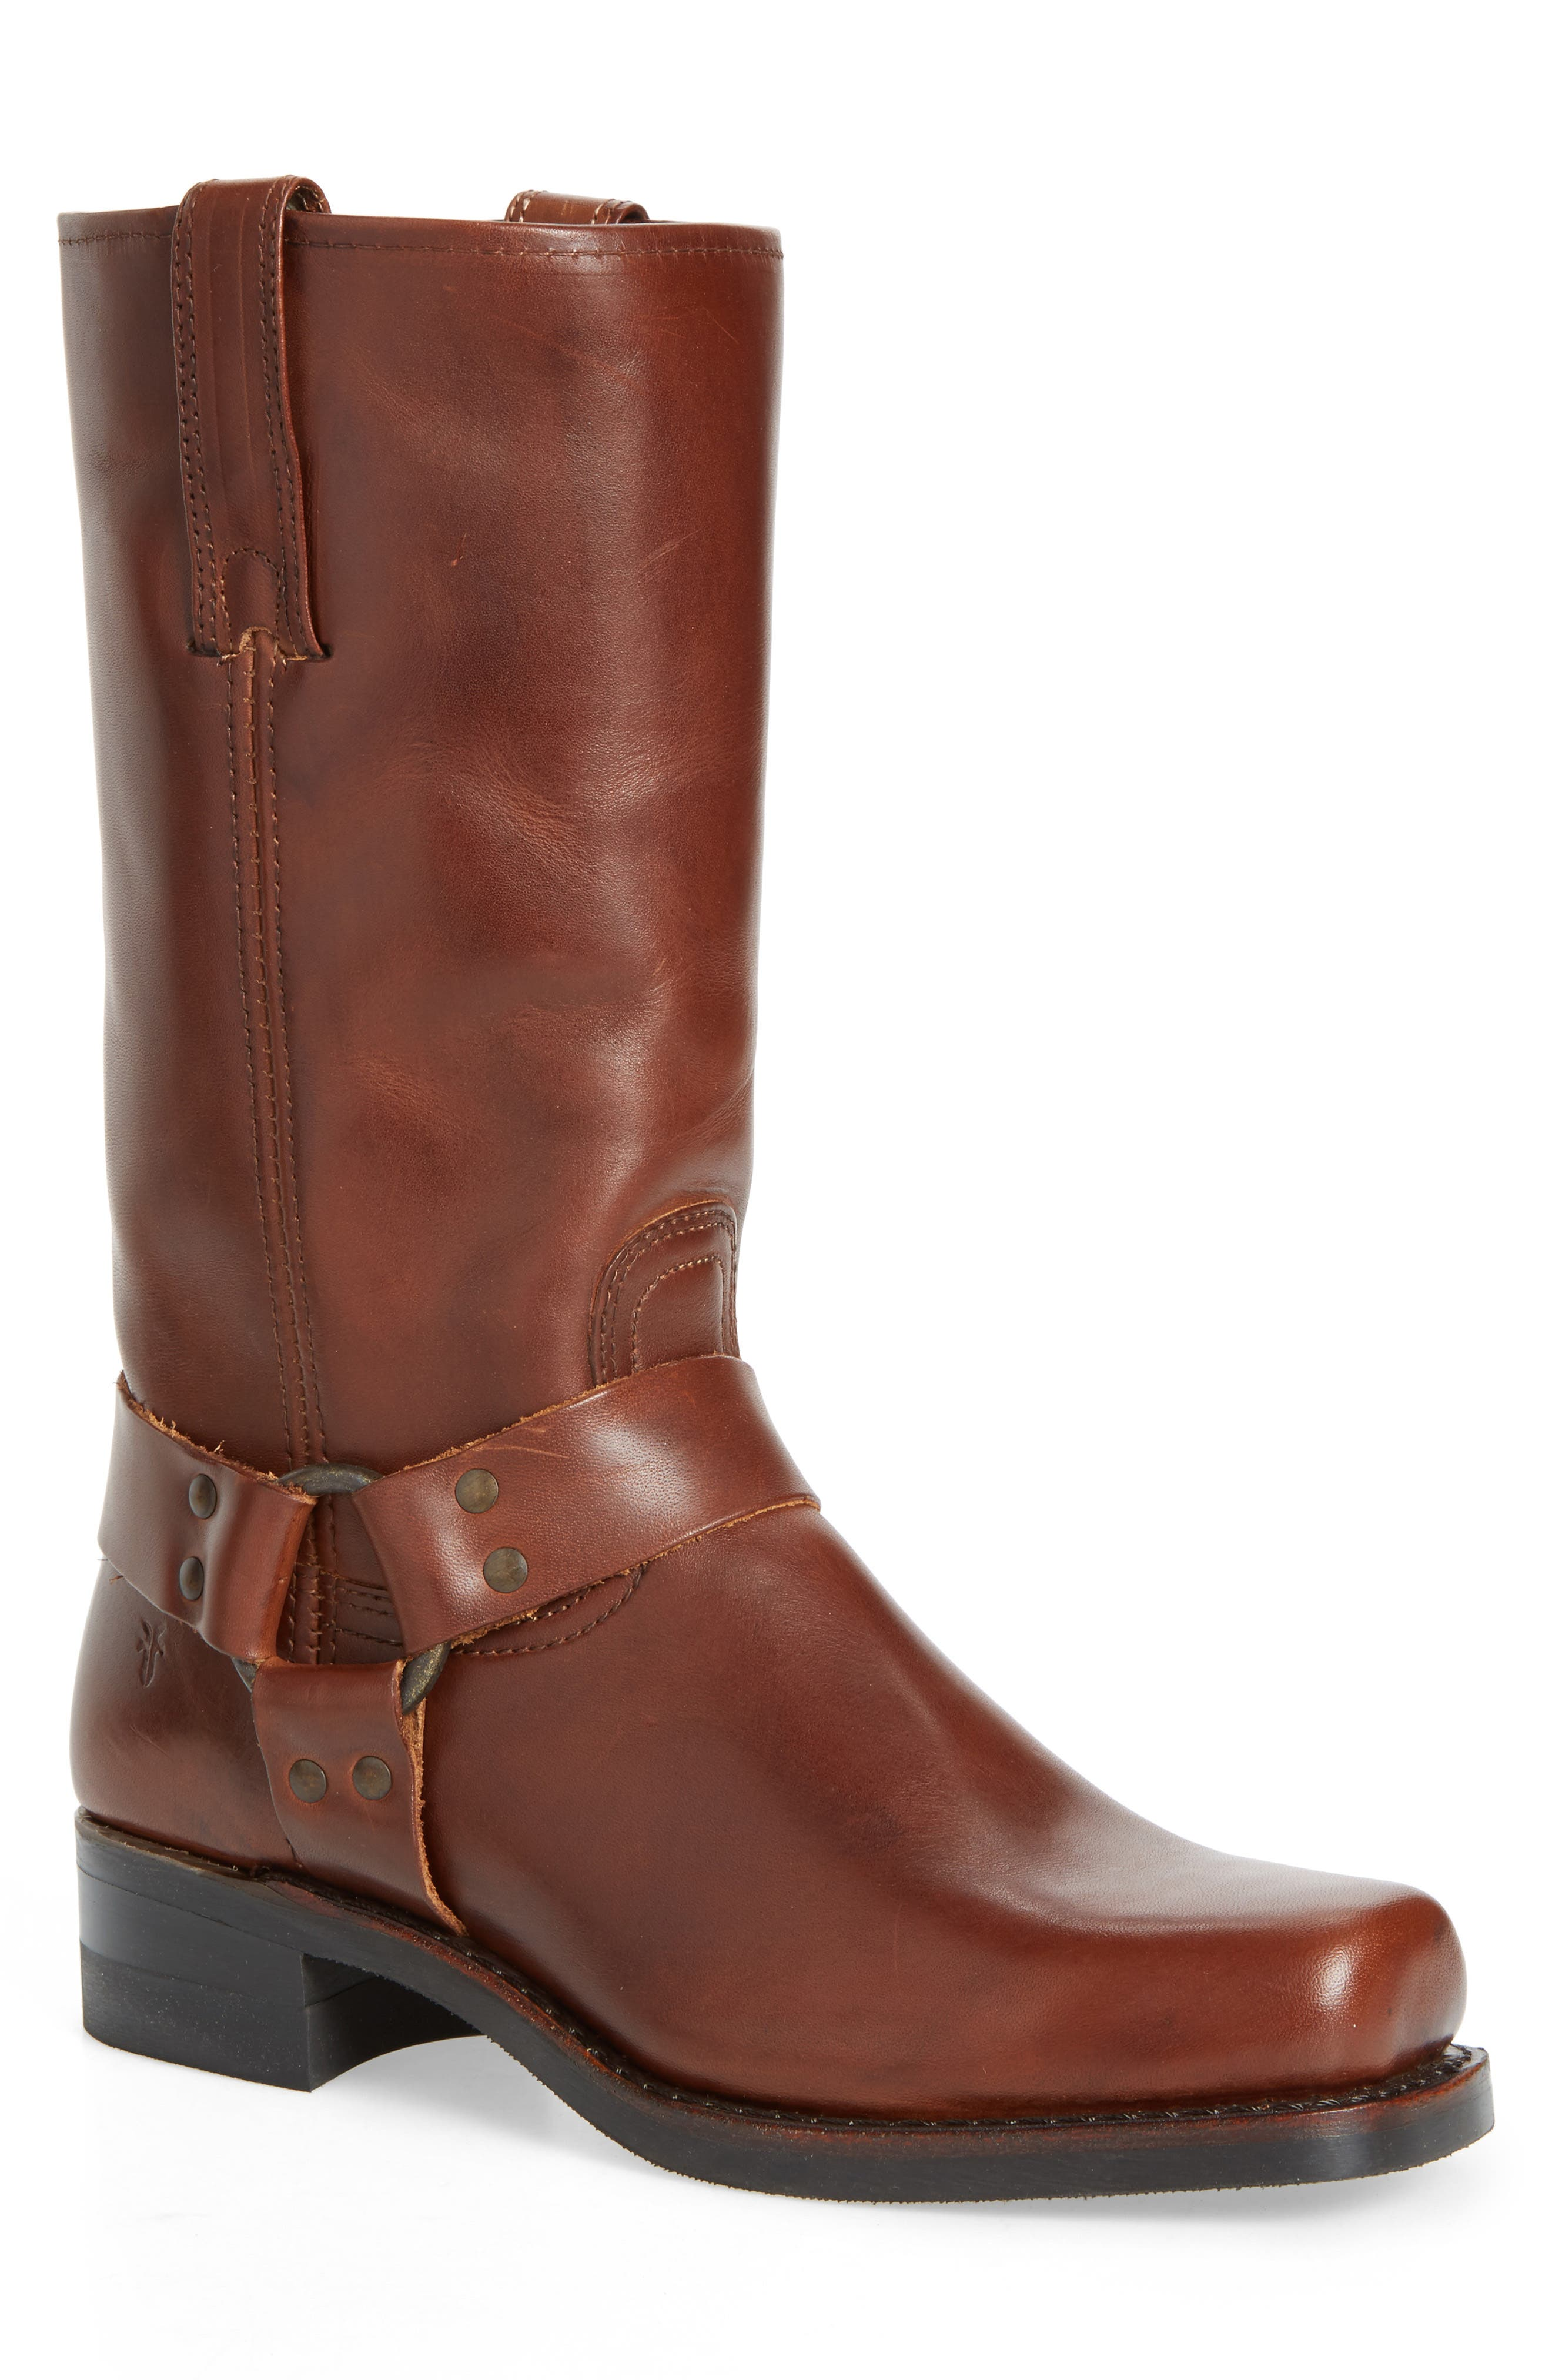 Frye 12R Harness Boot, Brown